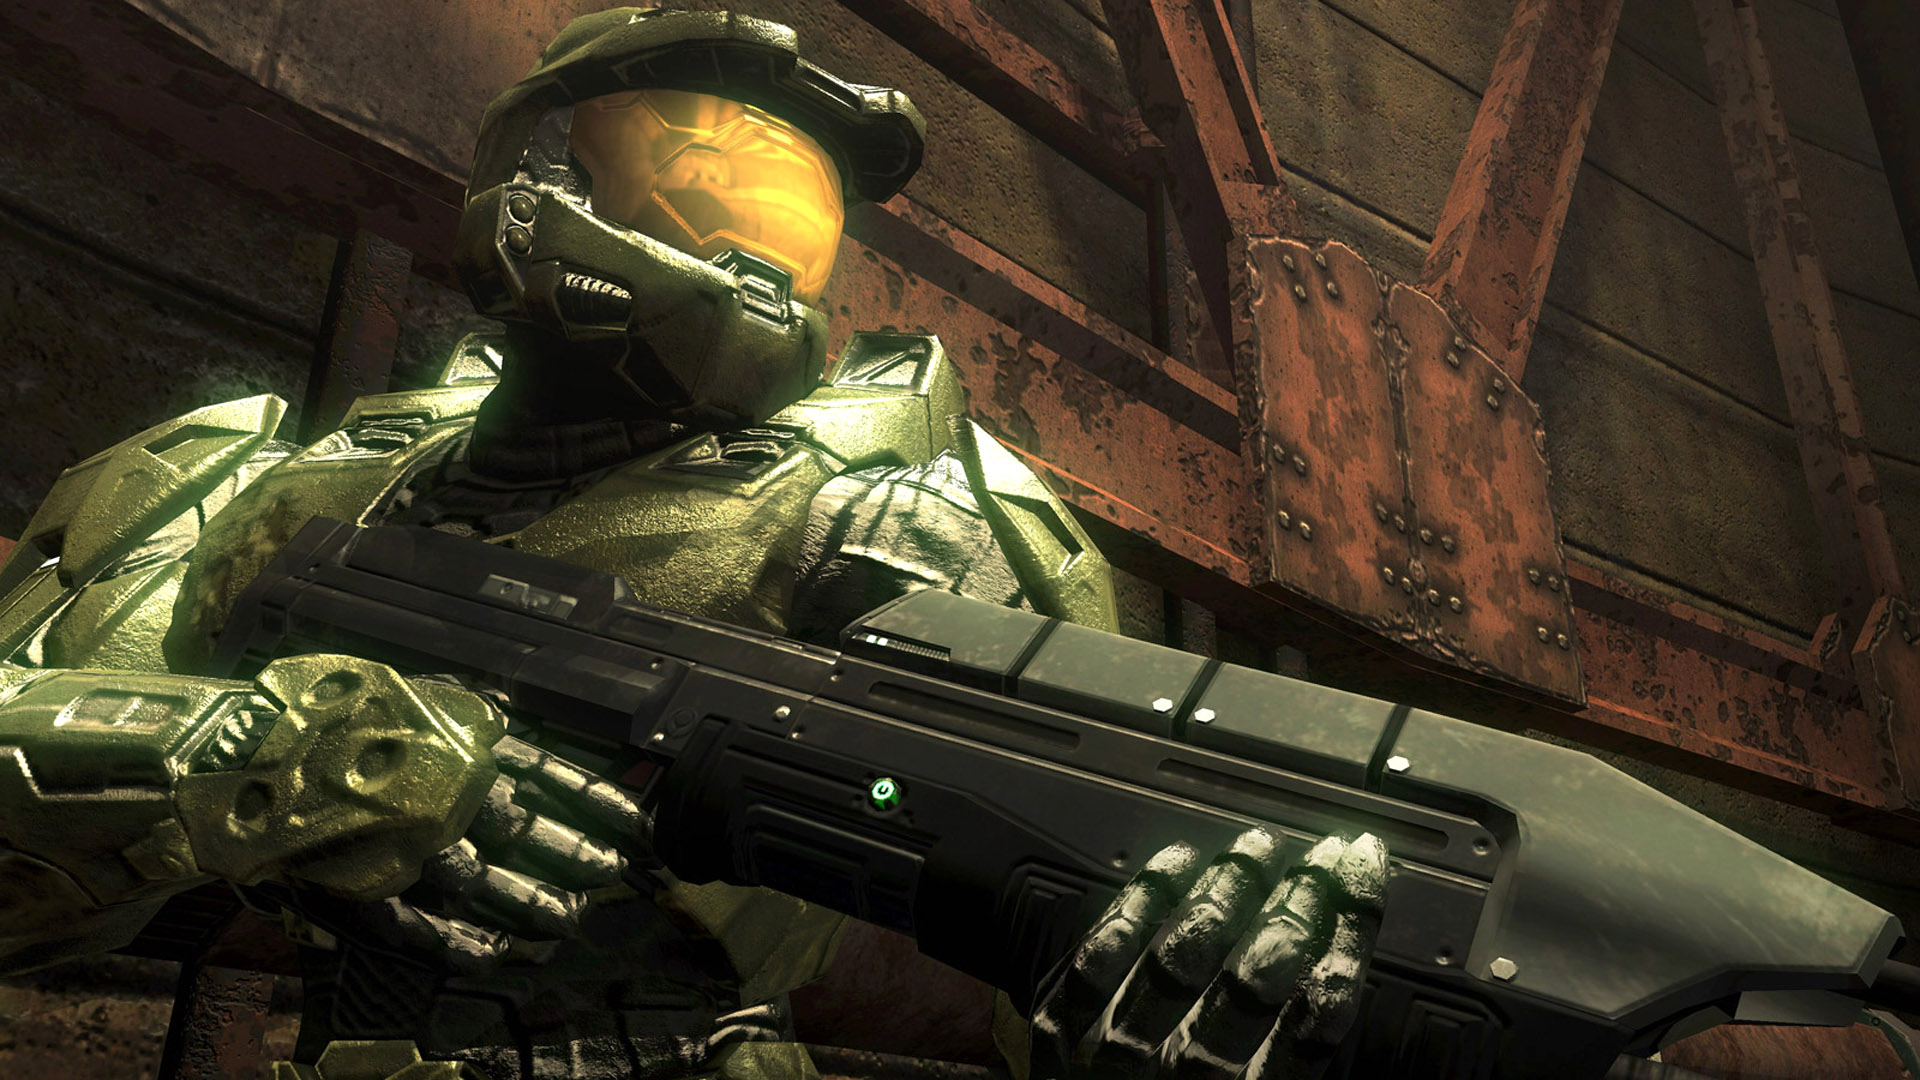 wallpaper free game halo - photo #25